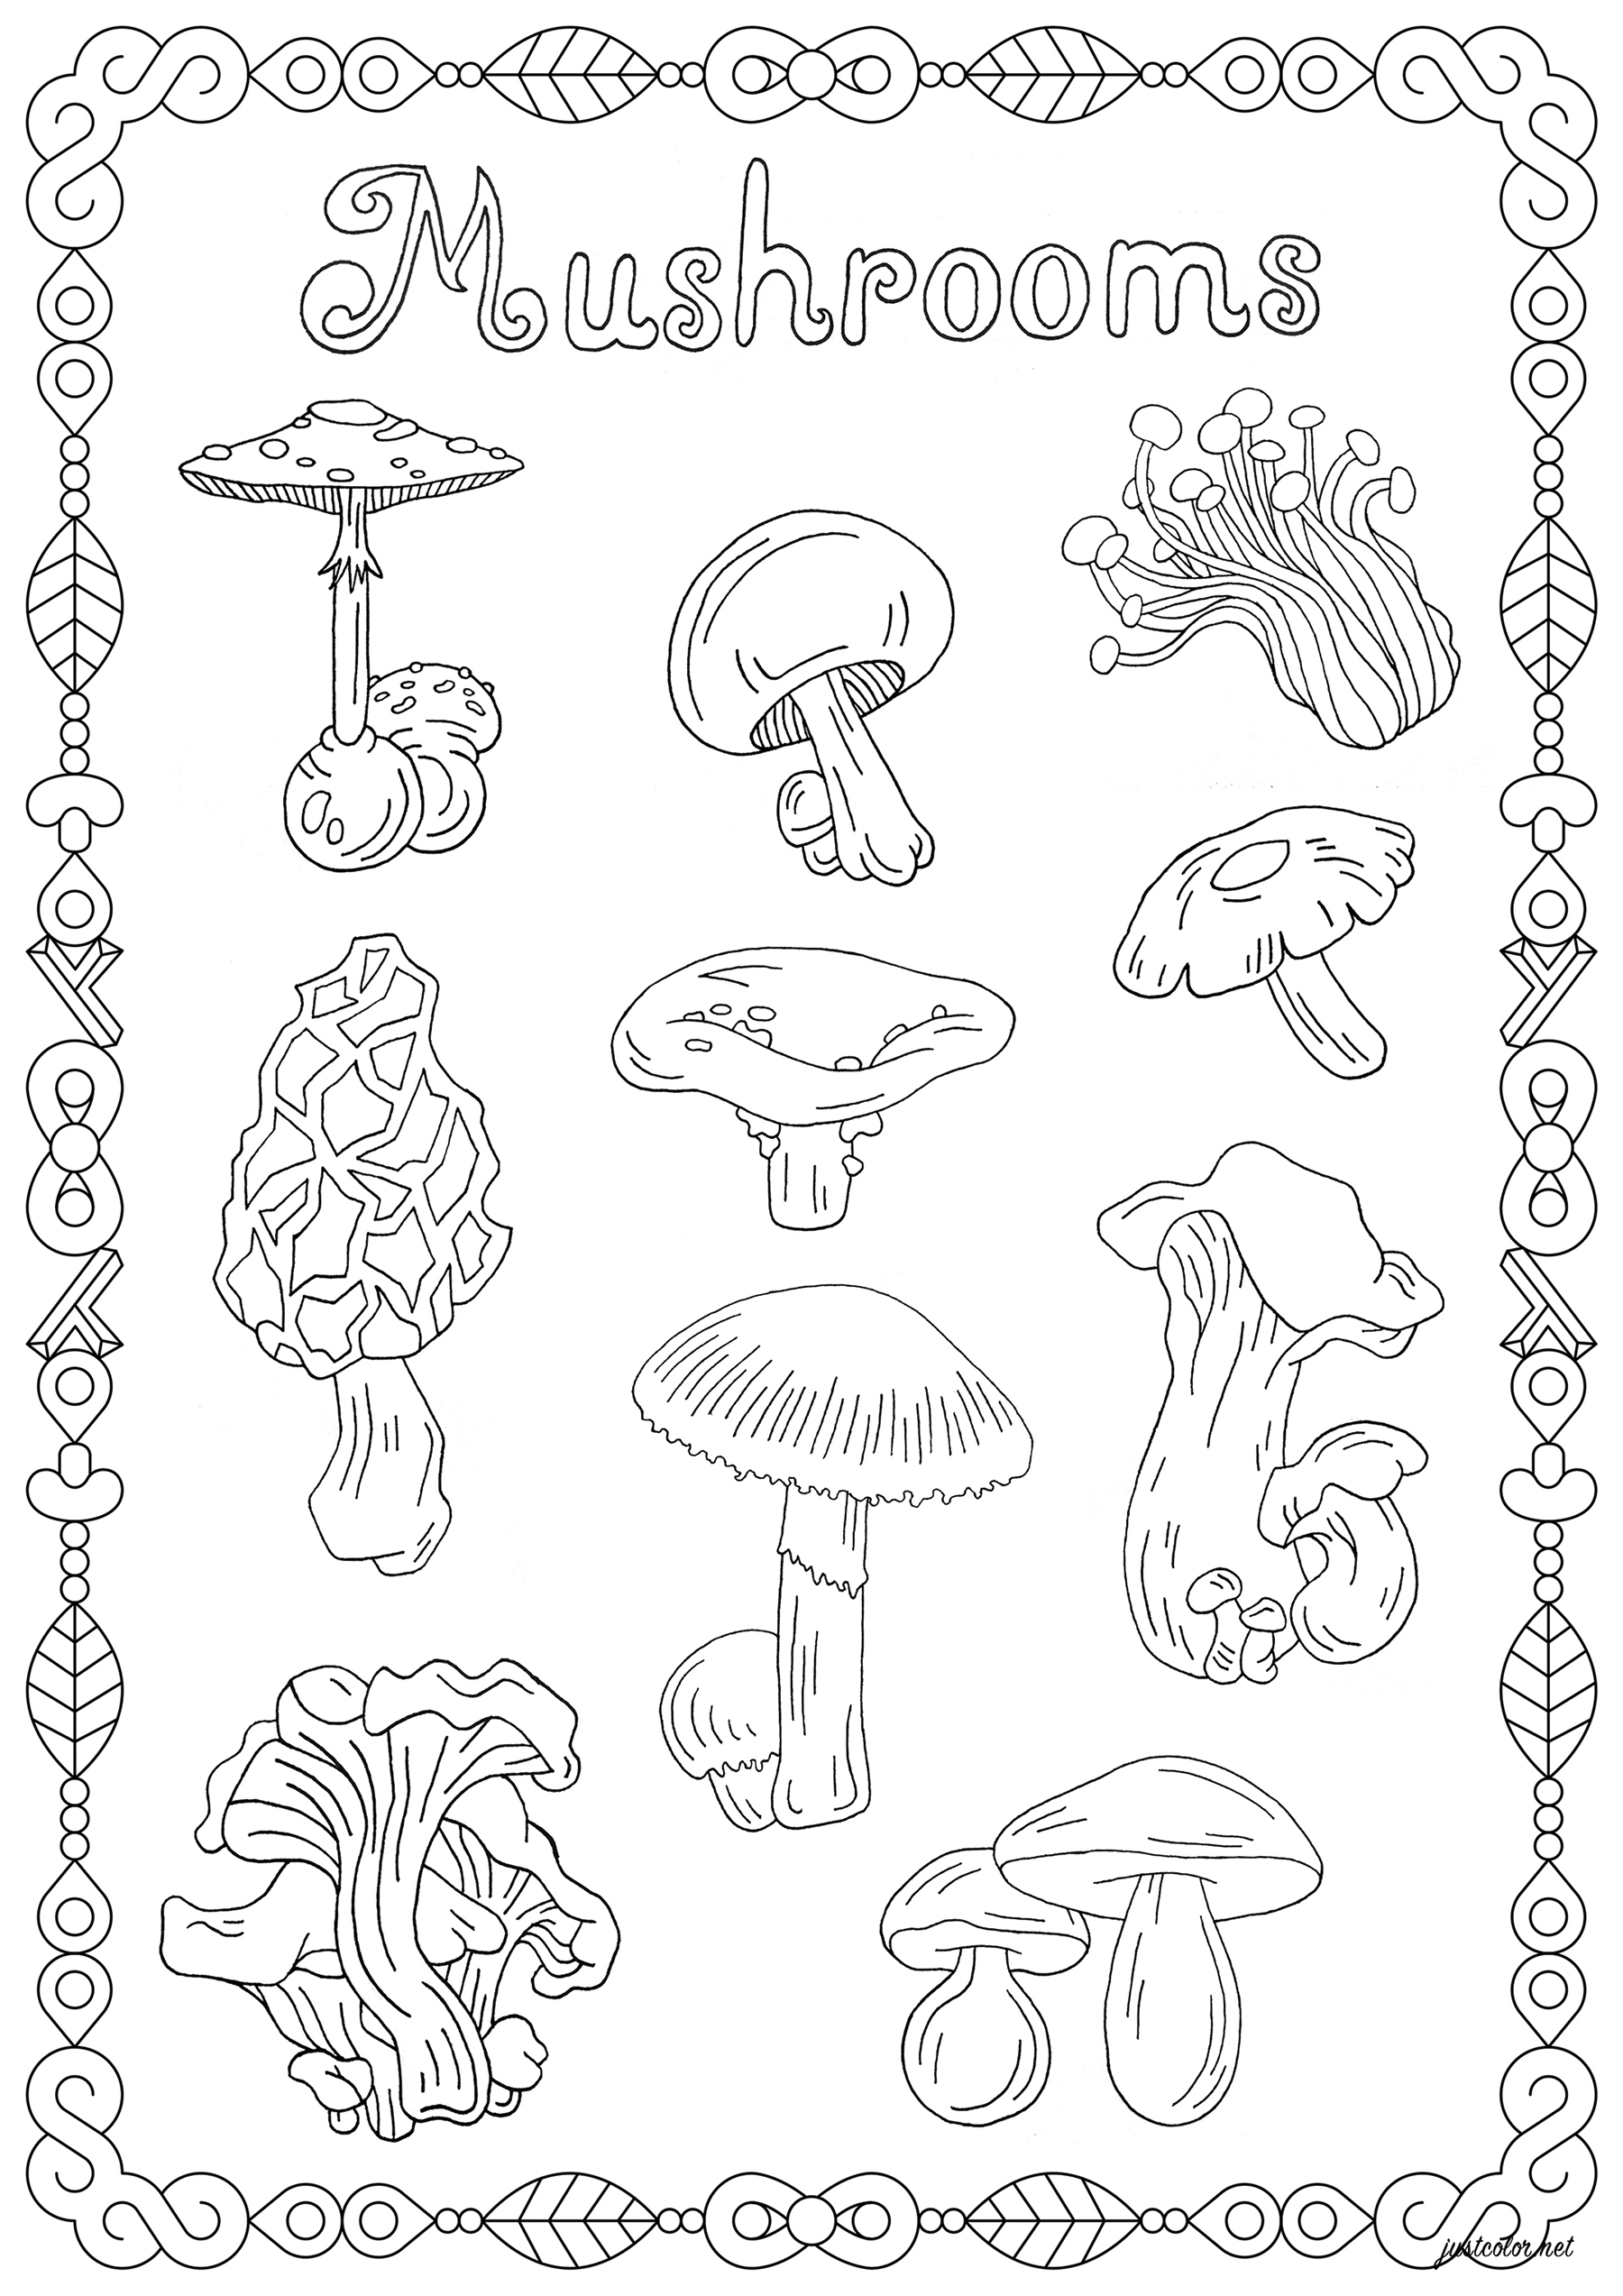 Color these different mushroom varieties, the beautiful frame around them, and the word 'Mushrooms'